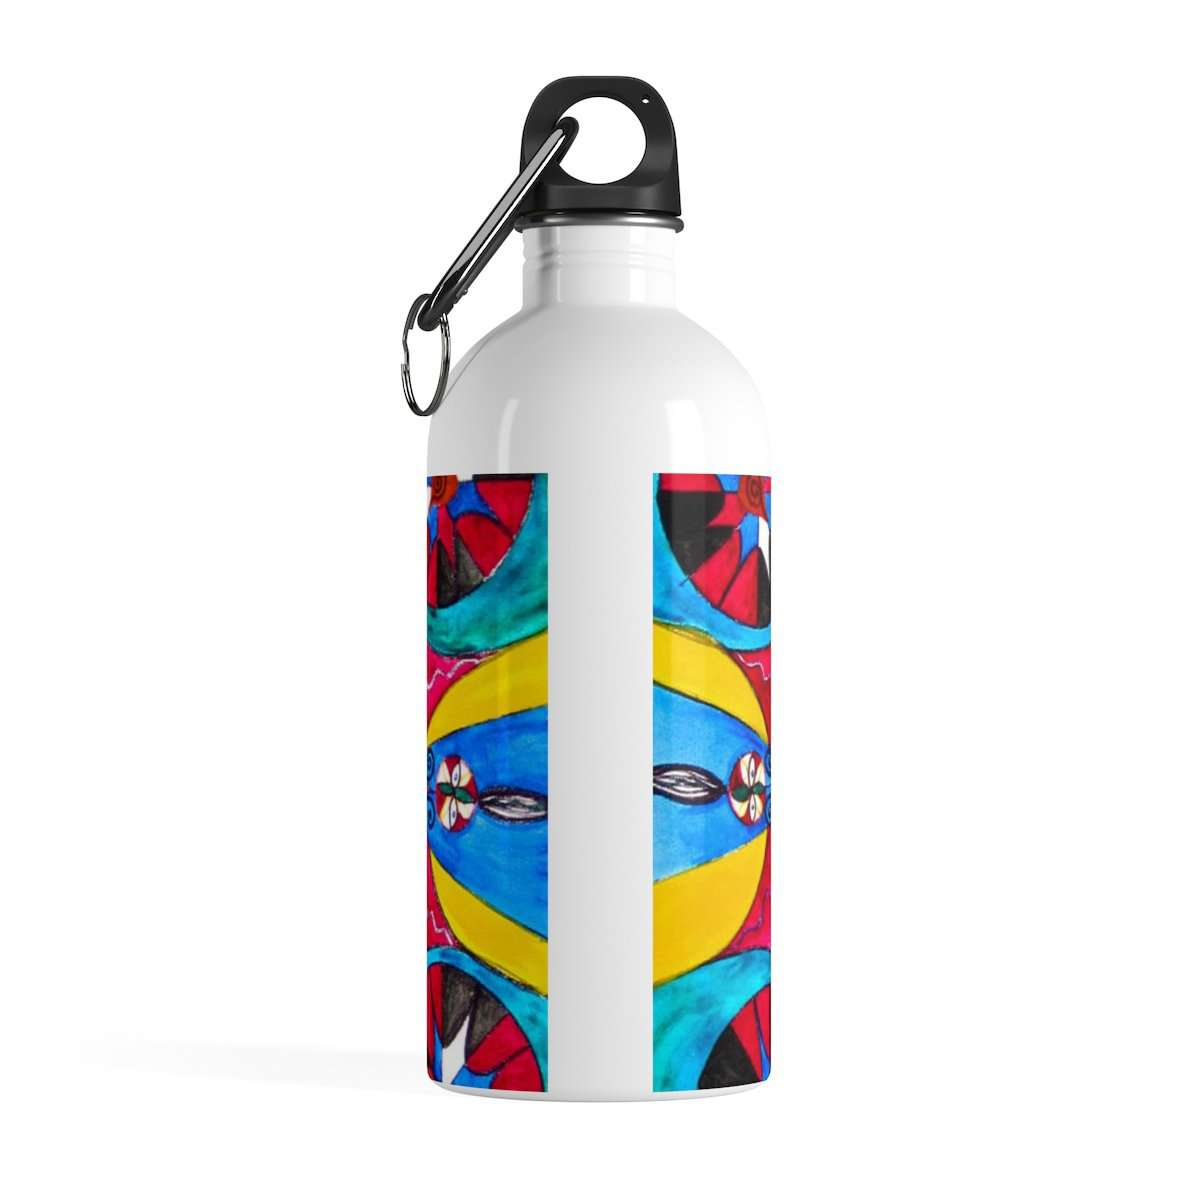 Origin of the Soul - Stainless Steel Water Bottle